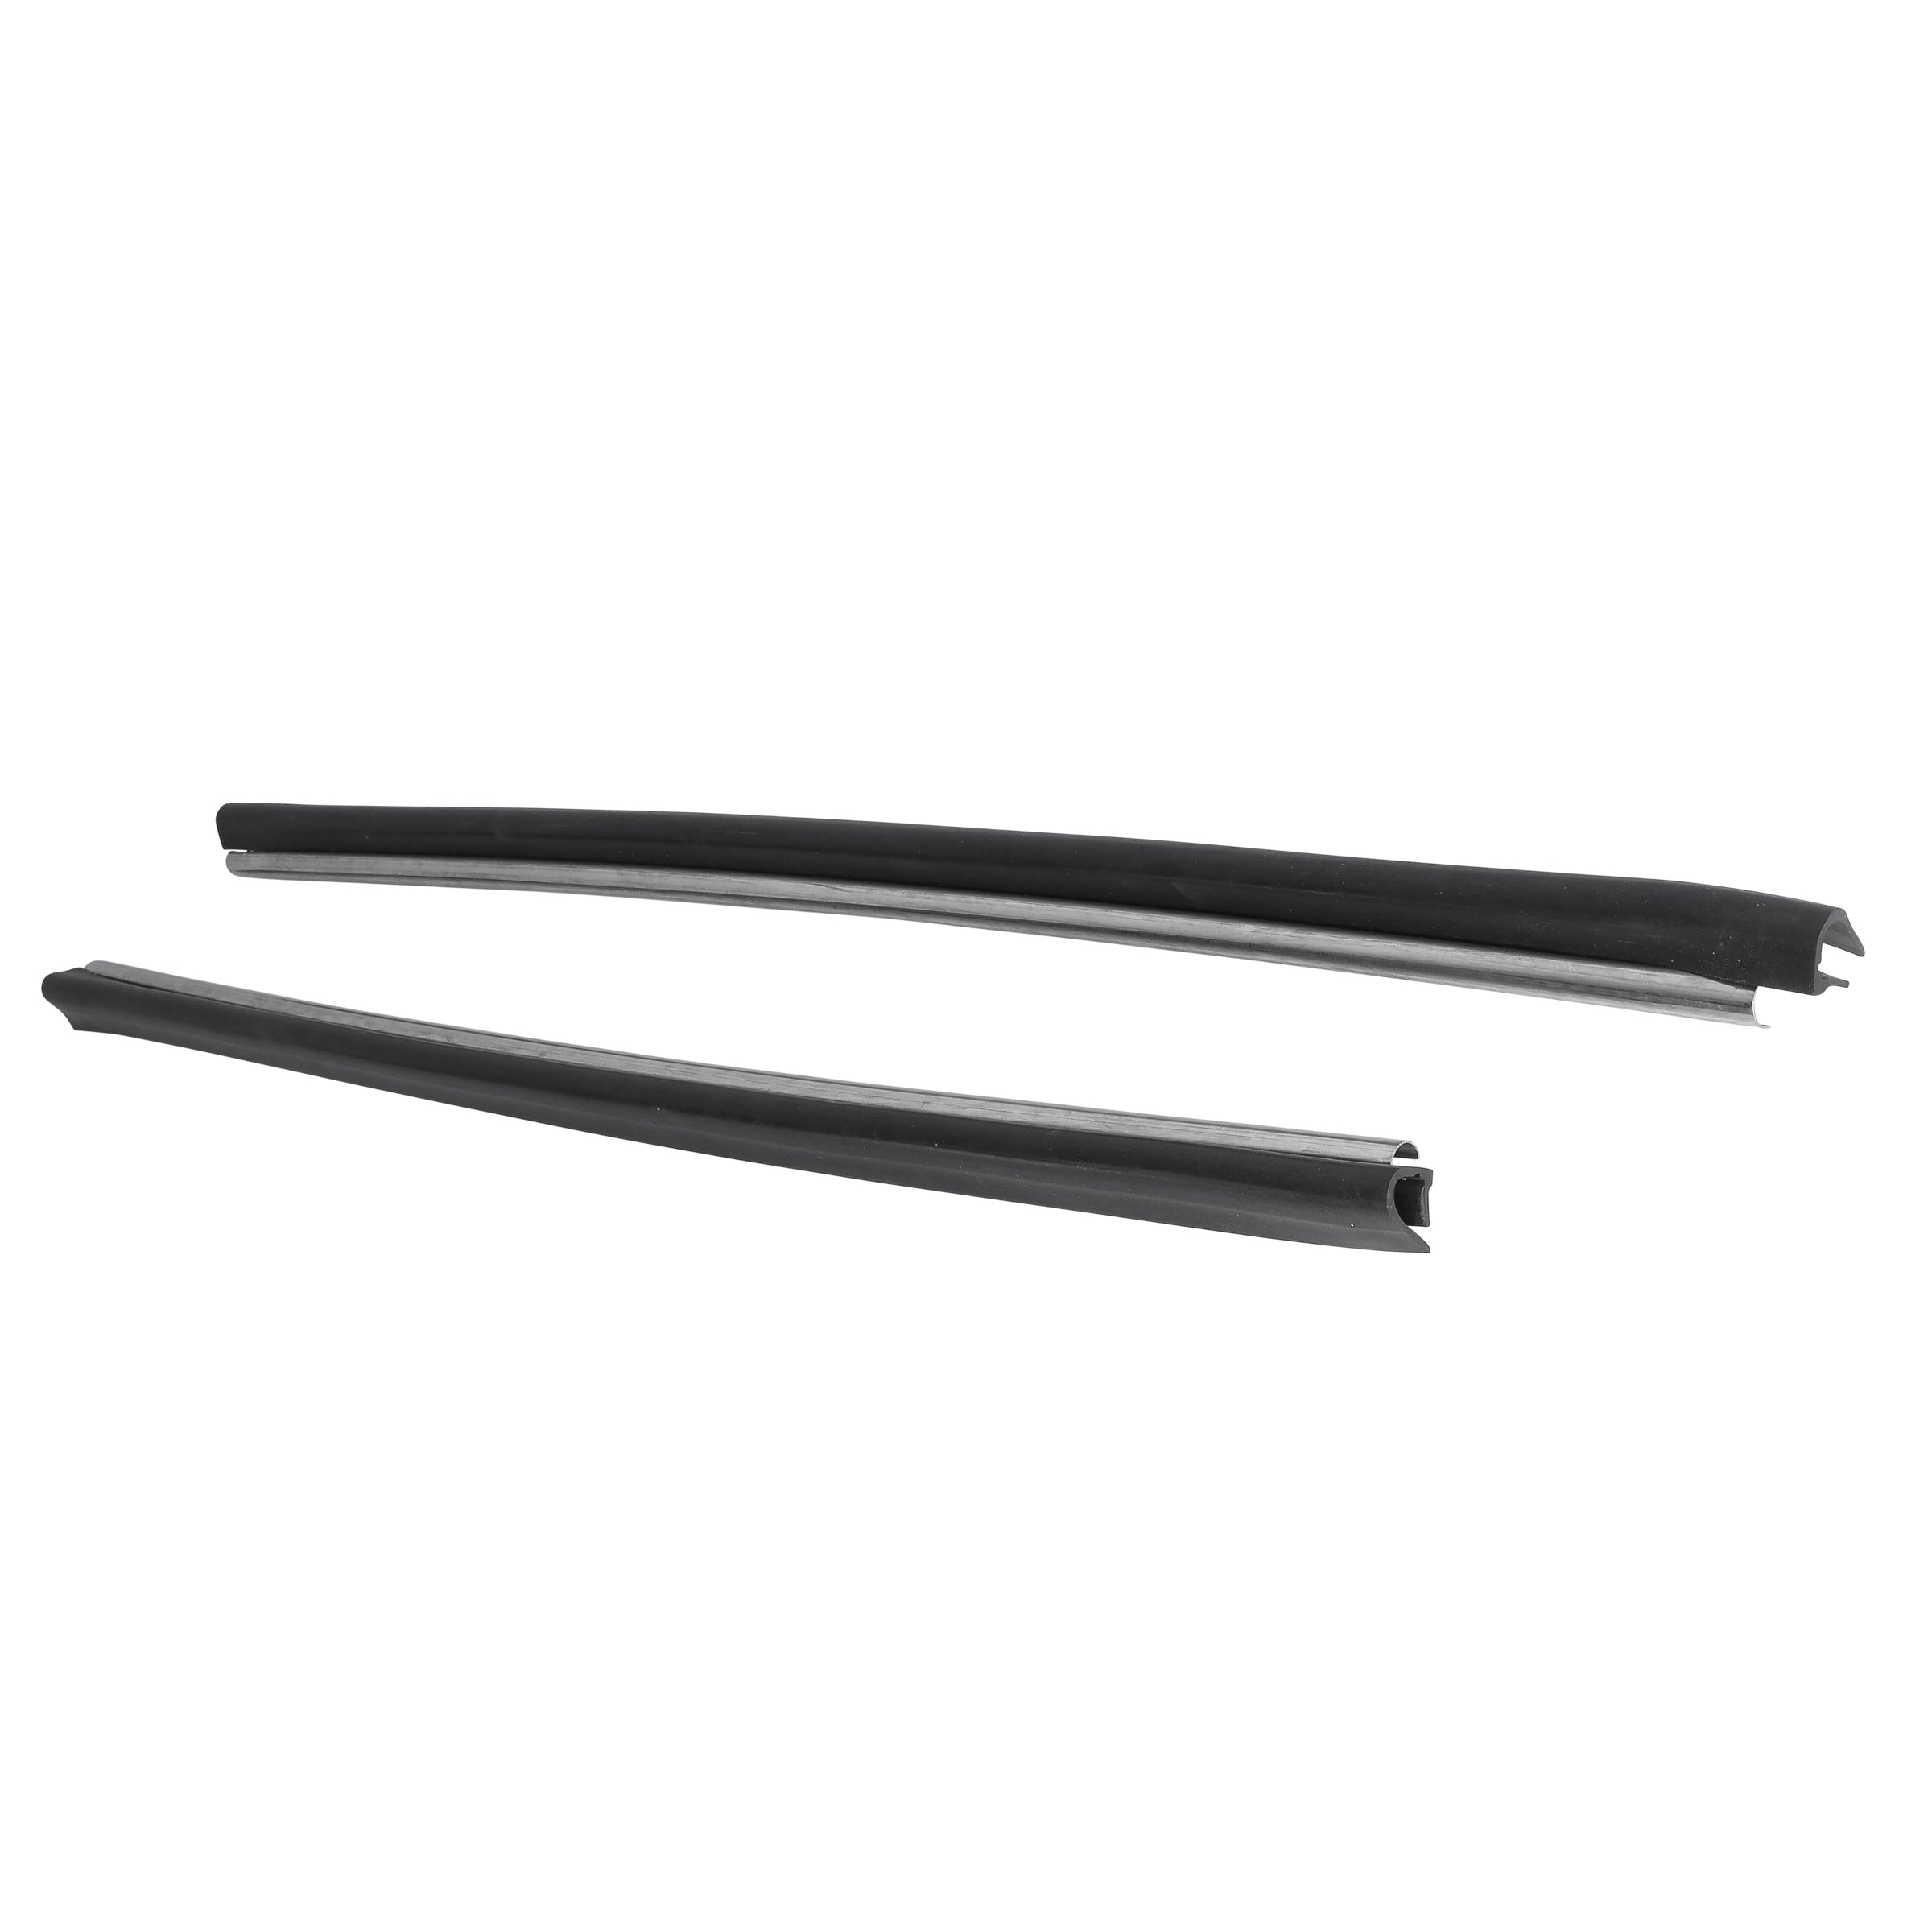 Door Scuff (Sill) Plates • 1938-39 Ford Phaeton (Front) & 1938-39 Convertible Sedan (Front)